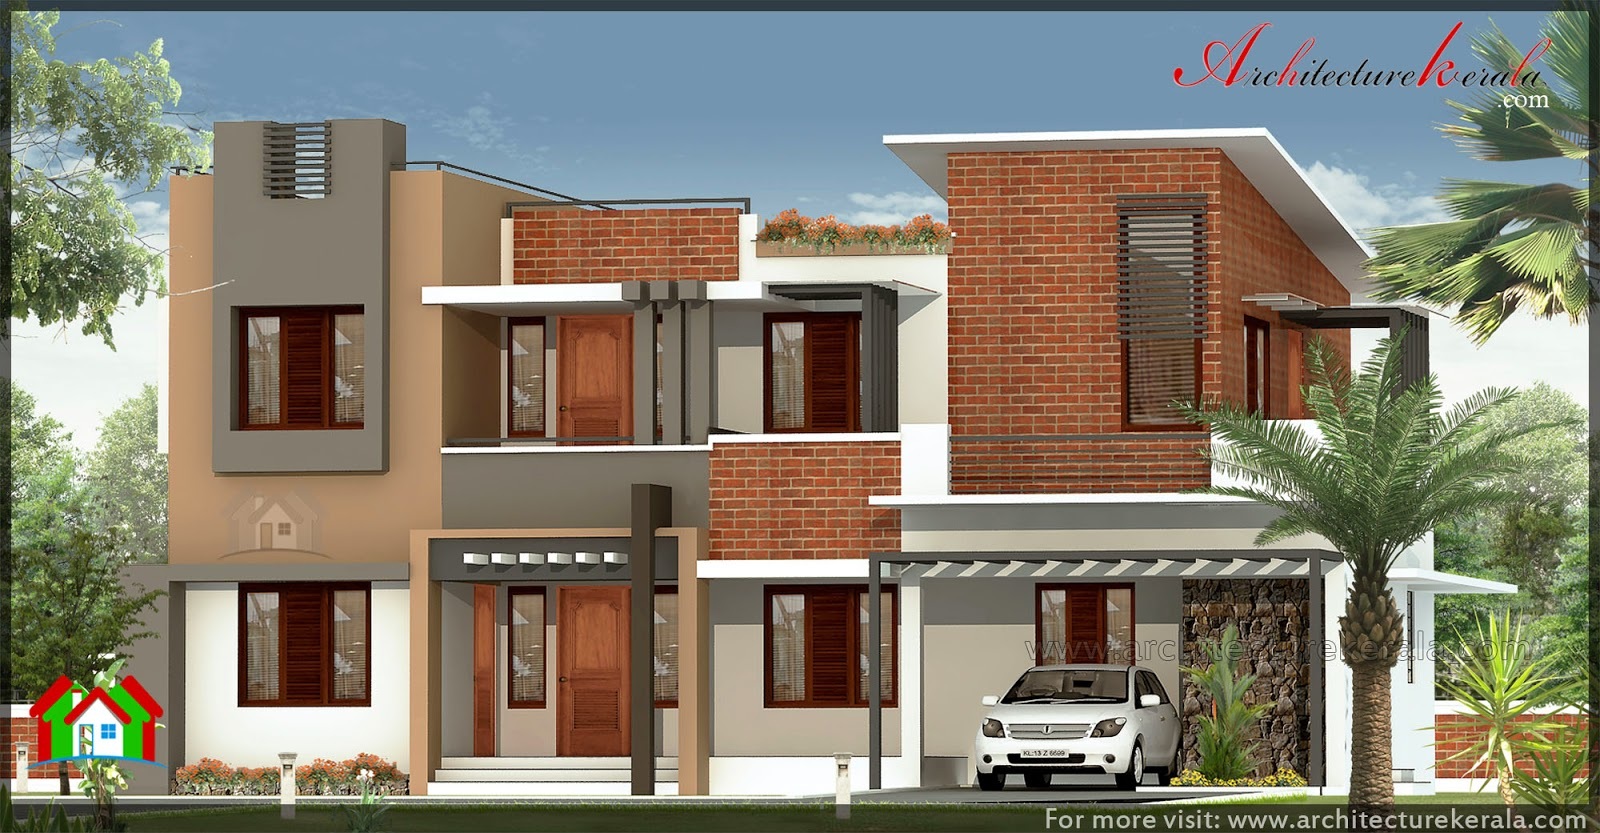 2400 square feet house design architecture kerala for Home designs kerala architects